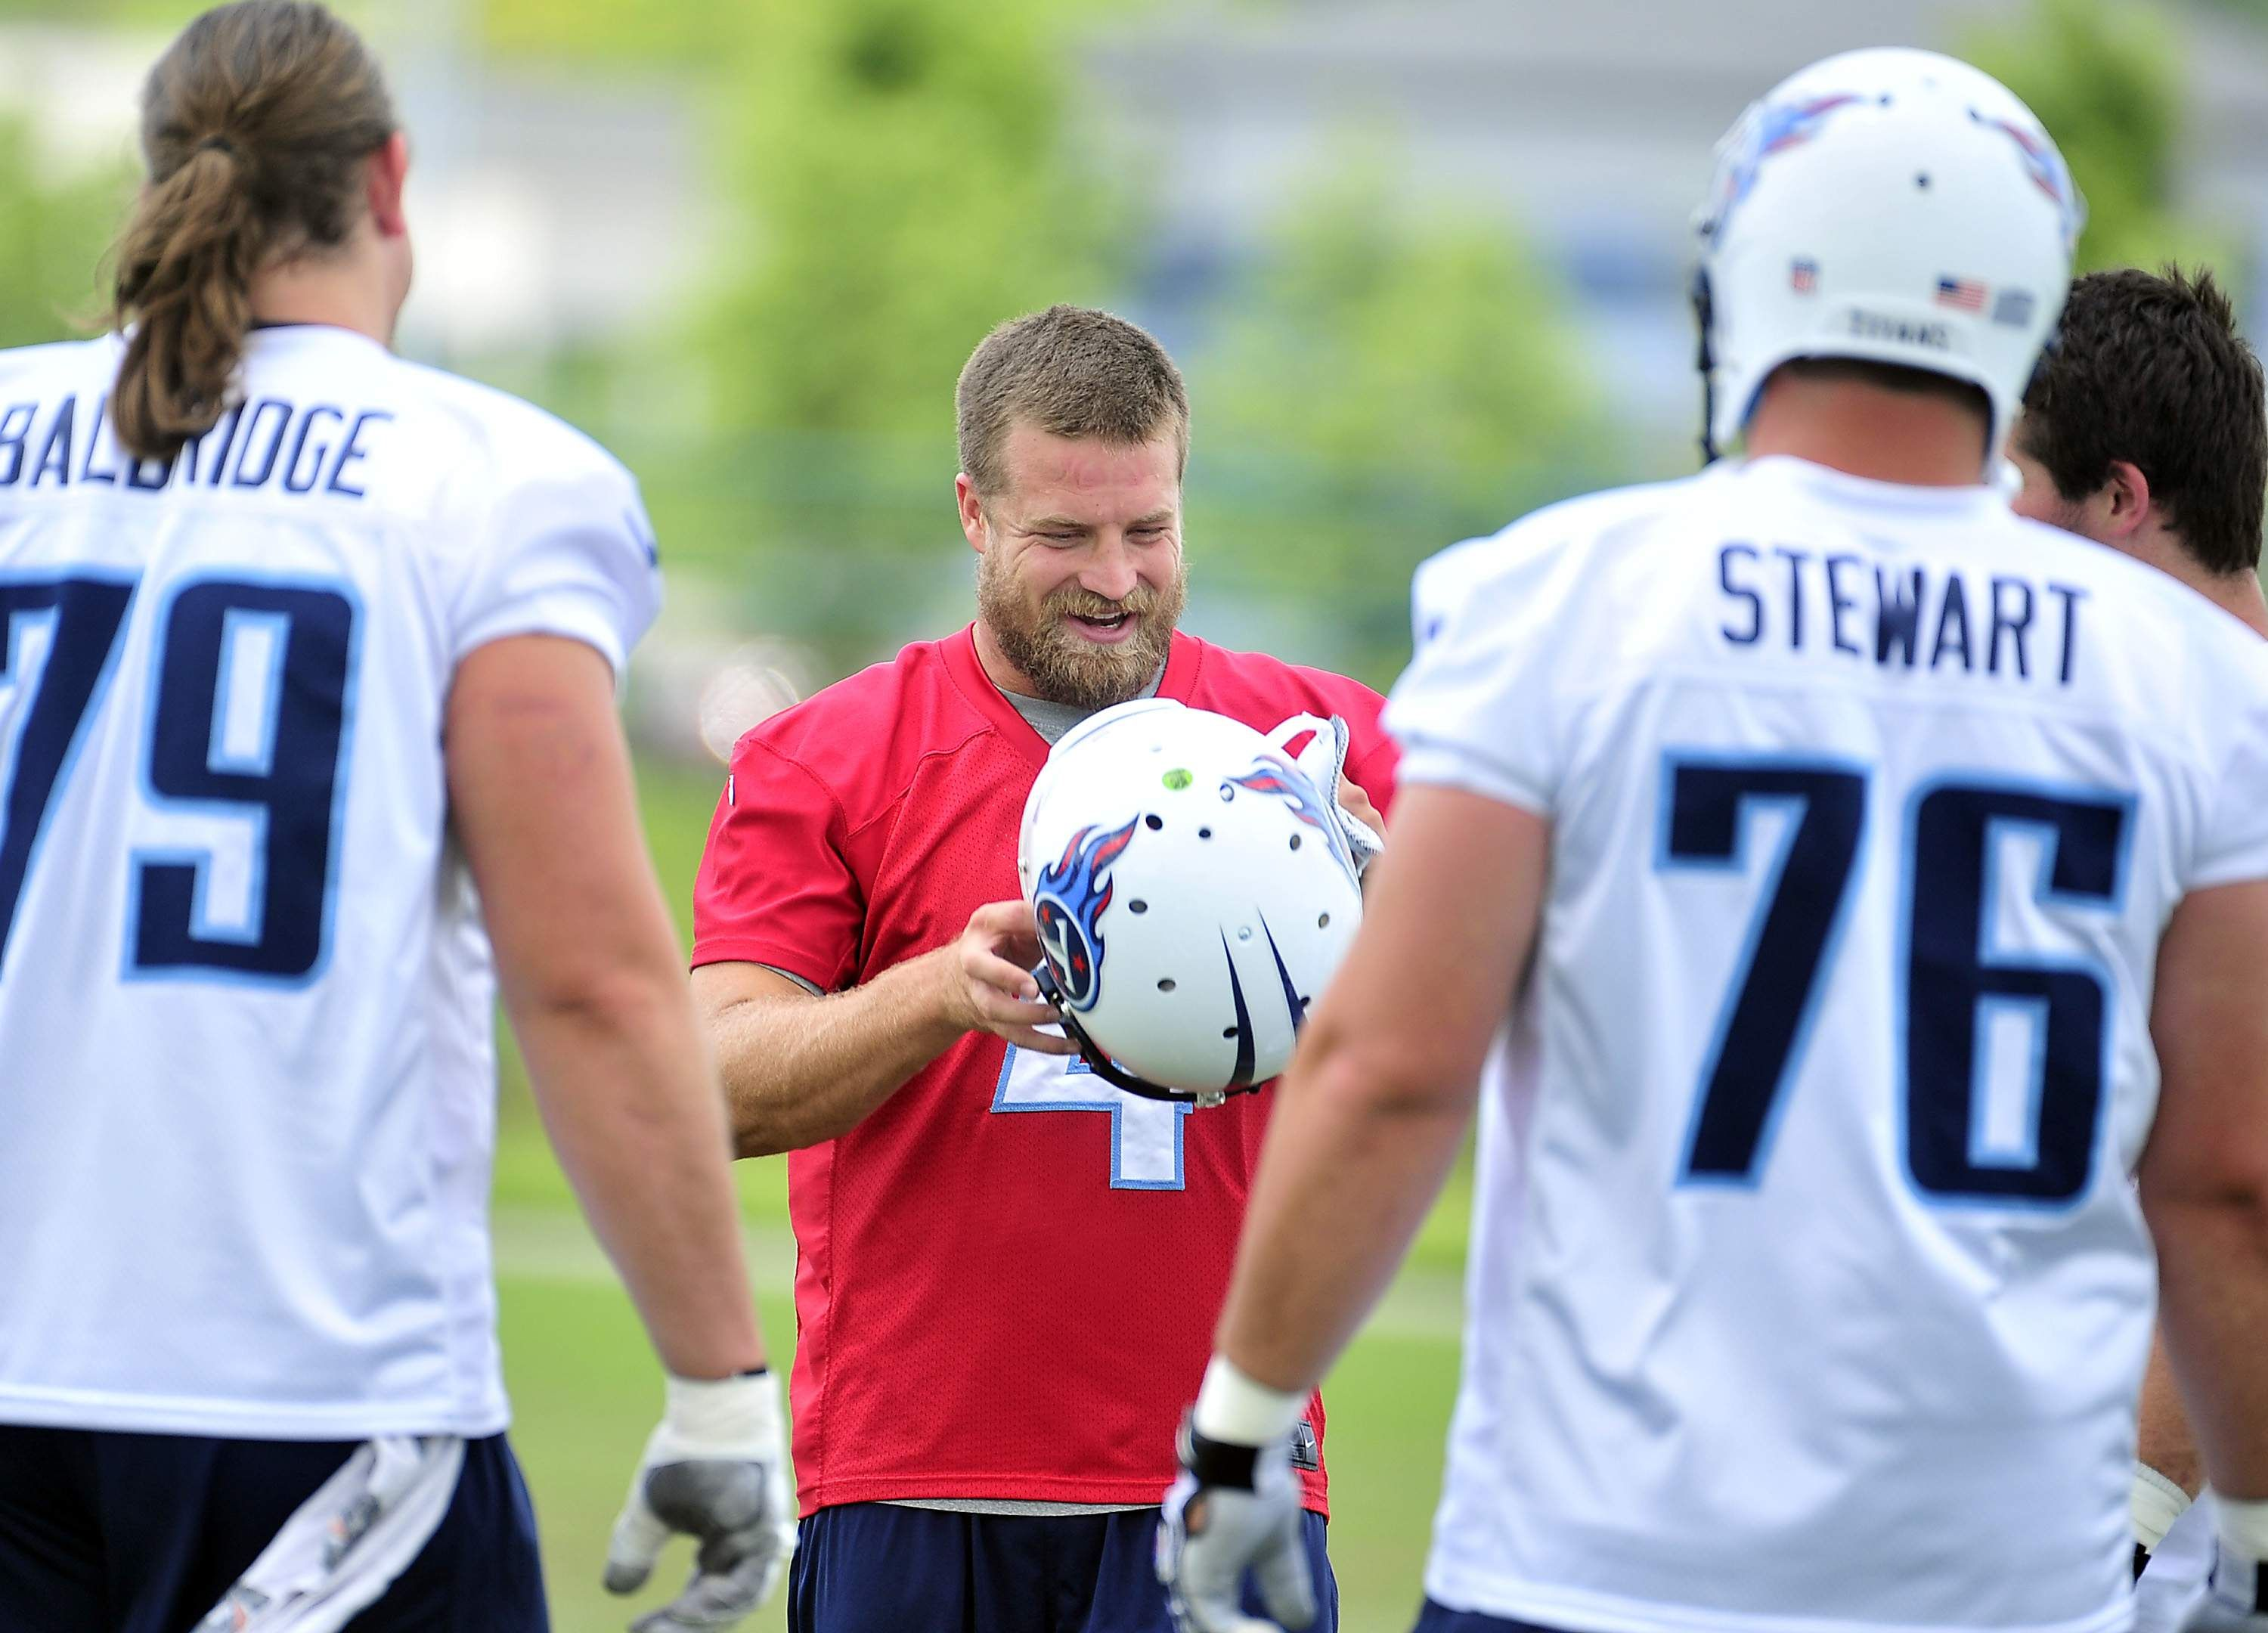 Tennessee Titans' Ryan Fitzpatrick adjusting to life as a backup